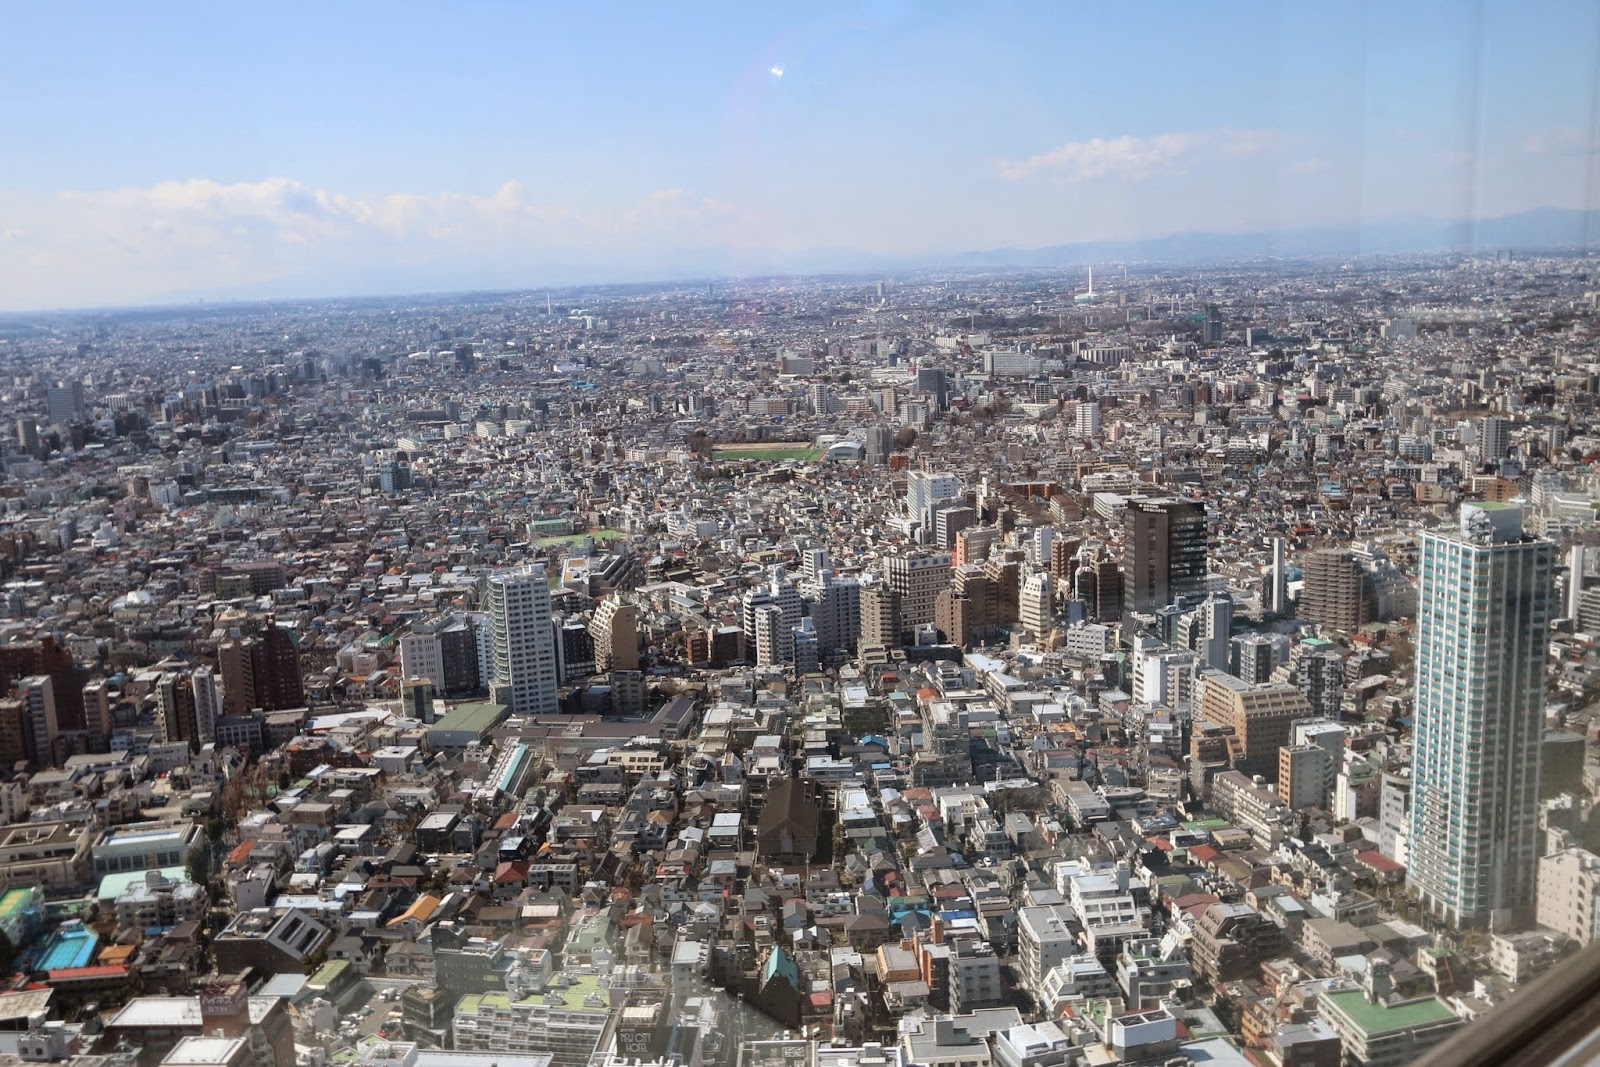 Look at how compact and high density Tokyo city is from the observation deck of Tokyo Metropolitan Government Building in Shinjuku, Japan